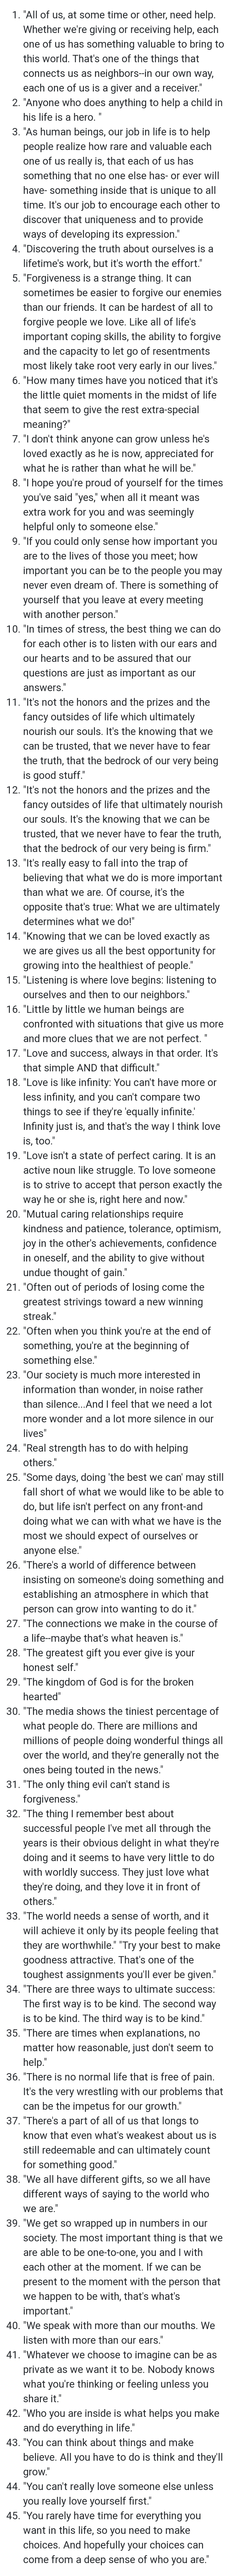 All quotes by Mr. Rogers. I read these when I'm down or upset. Thought it might help someone else. [Image]